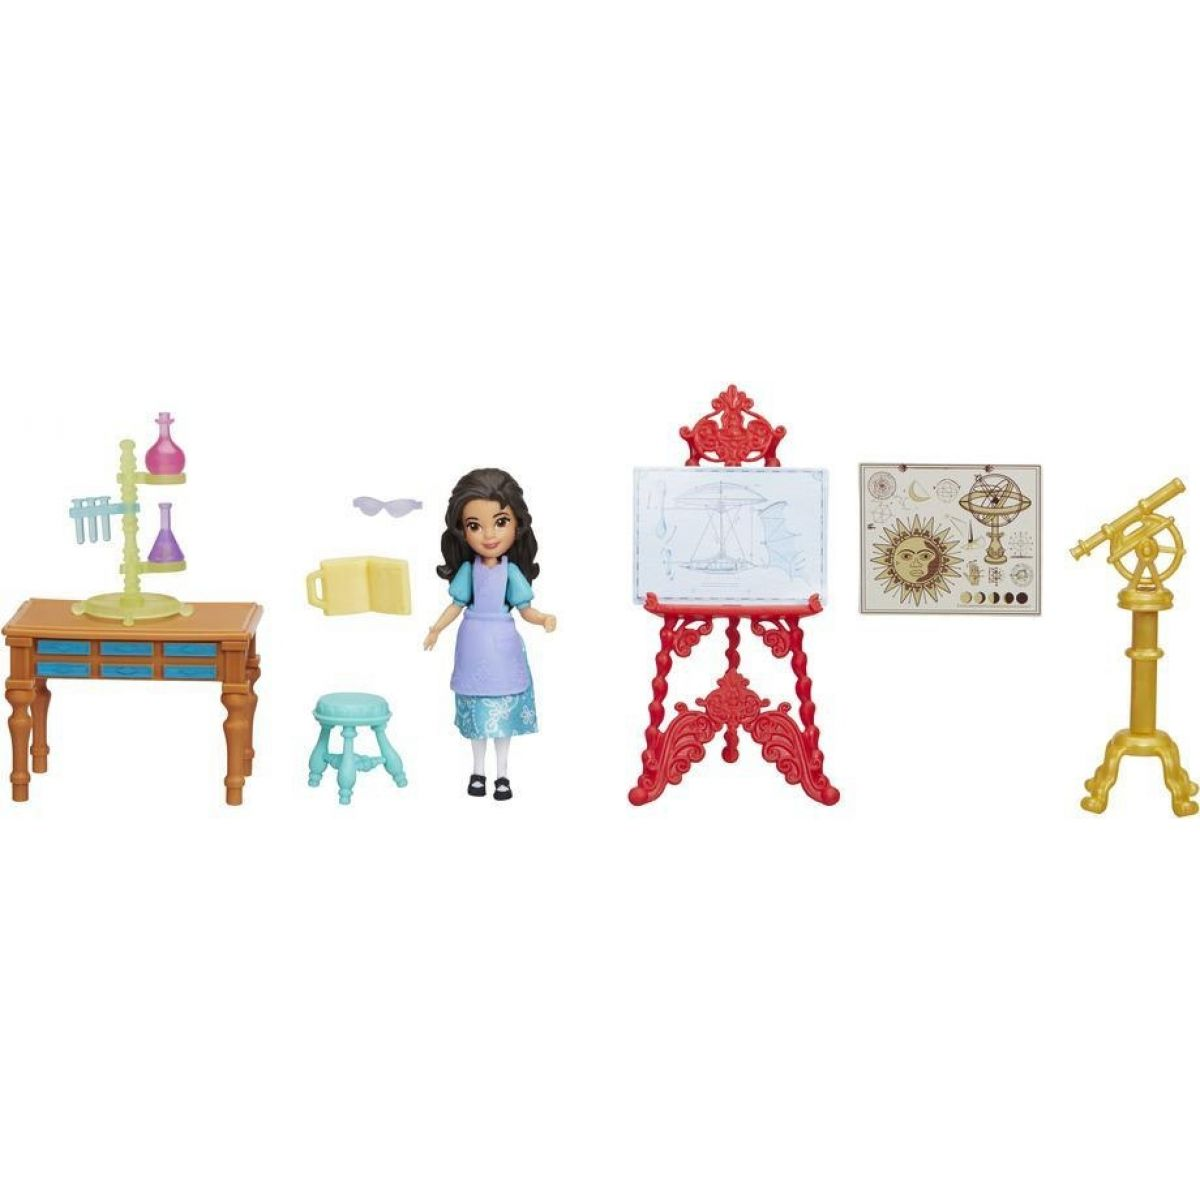 Hasbro Disney Princess Mini panenka Elena z Avaloru set Laboratoř